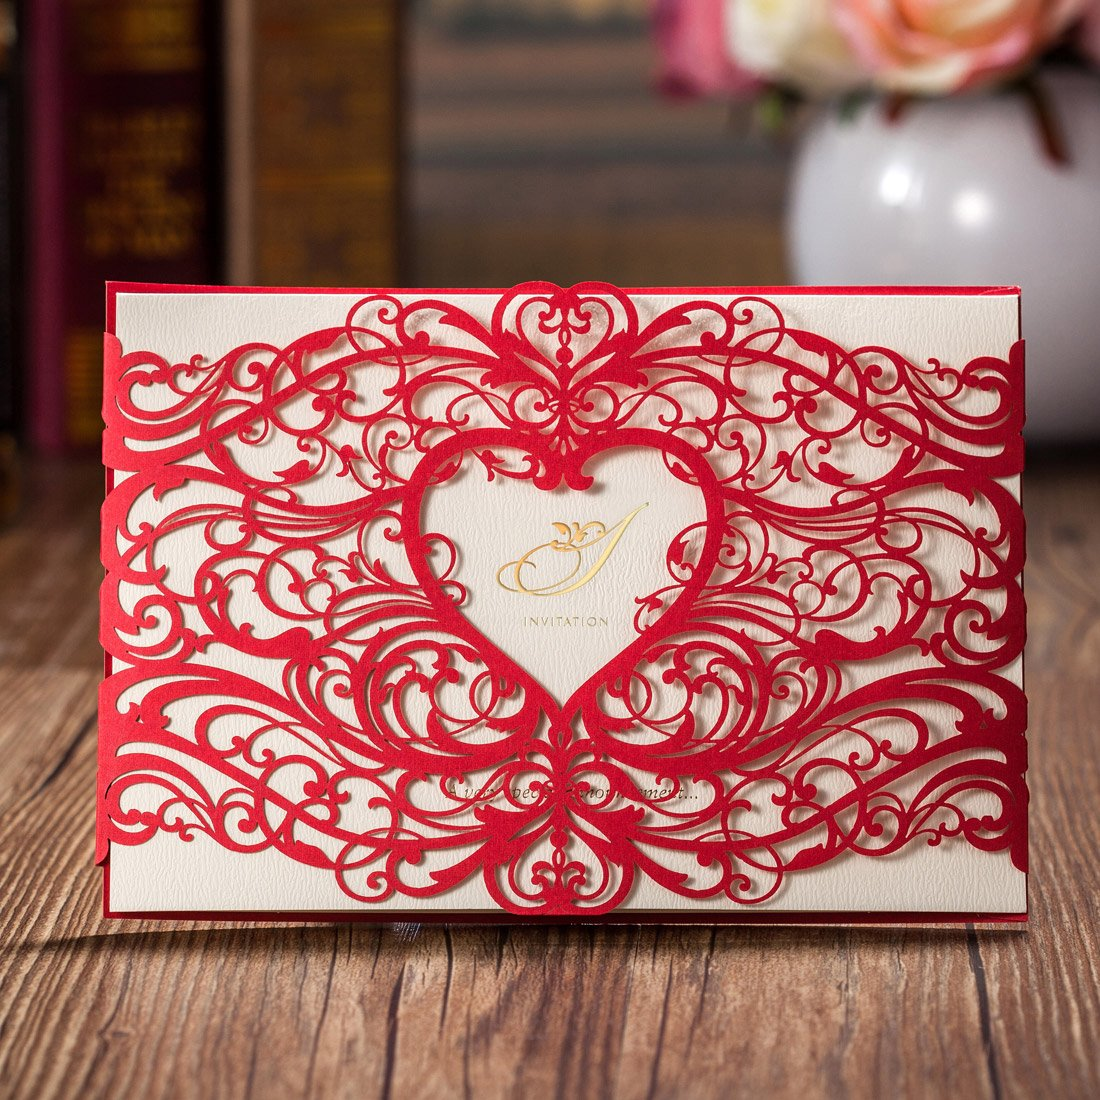 Wishmade 50 Pieces Red Laser Cut Wedding Invitations Cardstock With Elegant Heart Design Hollow floral for Birthday Baby Shower with Envelopes (pack of 50pcs)